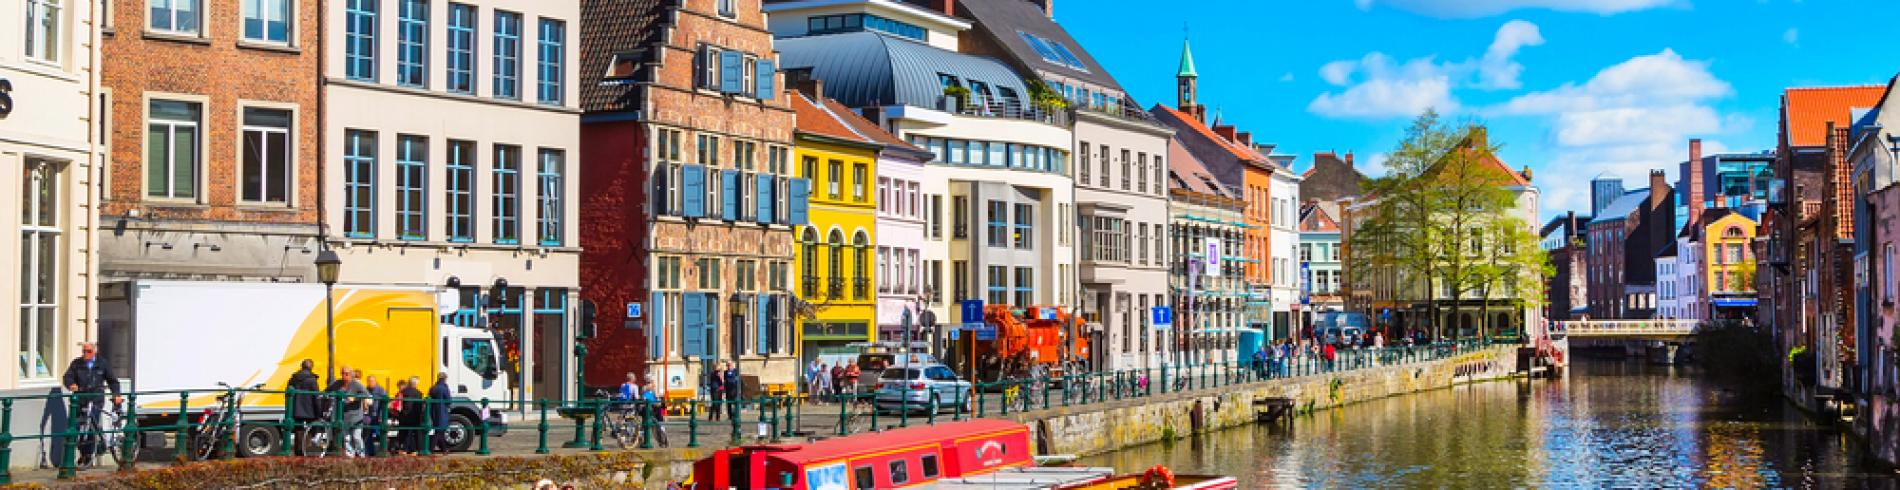 Traditional houses in Ghent